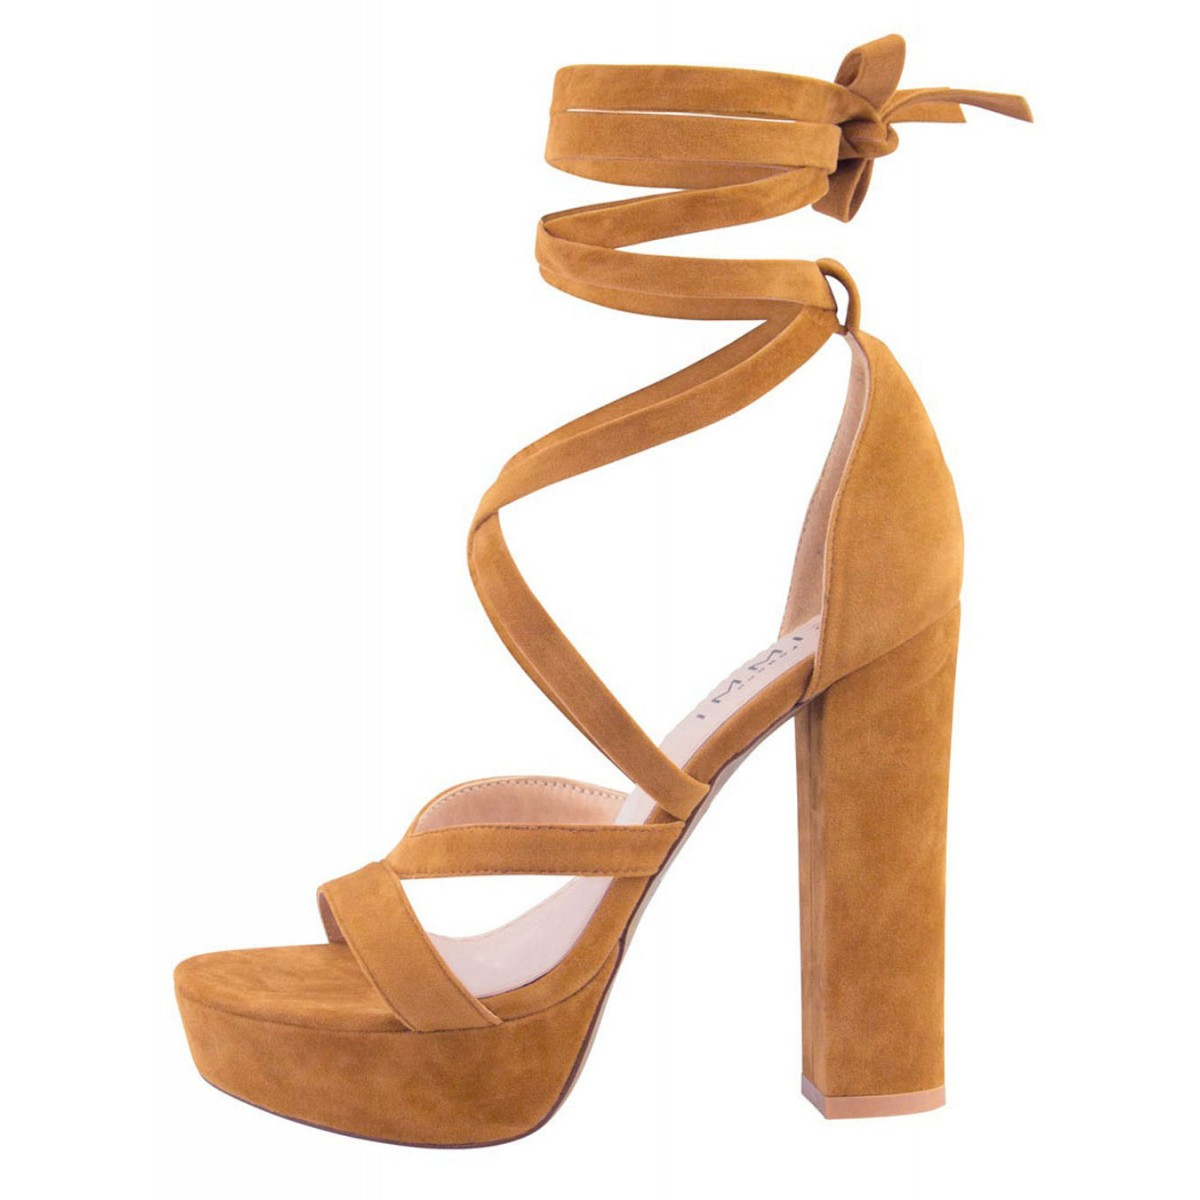 Amelia Nude Suede Lace Up Platform Heels : Simmi Shoes - Love Your Shoes!